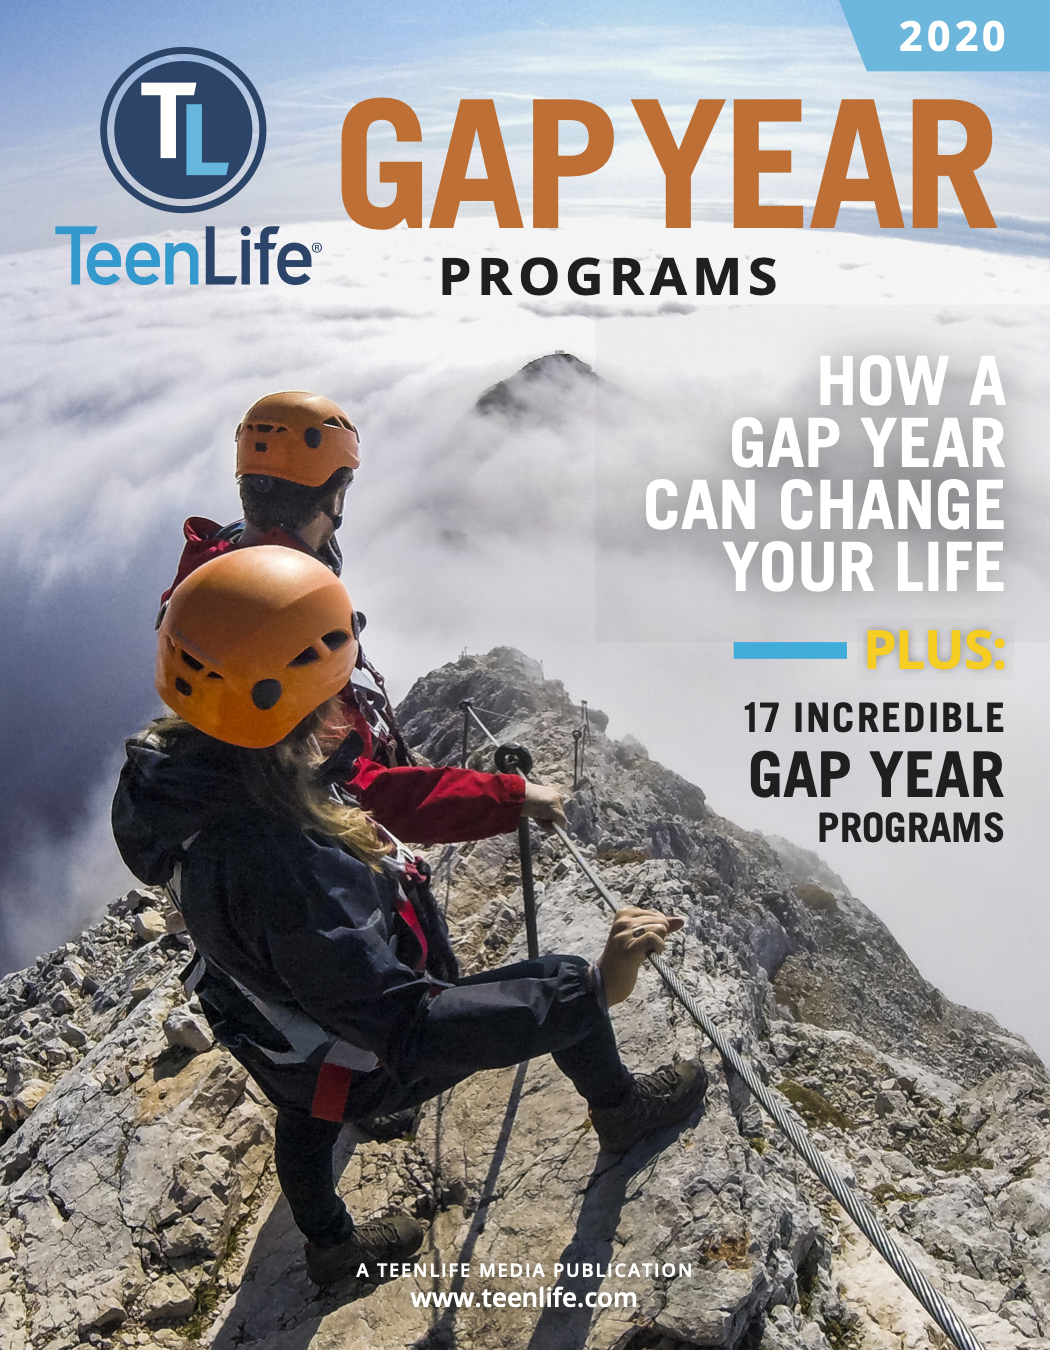 Guide to Gap Year Programs 2020